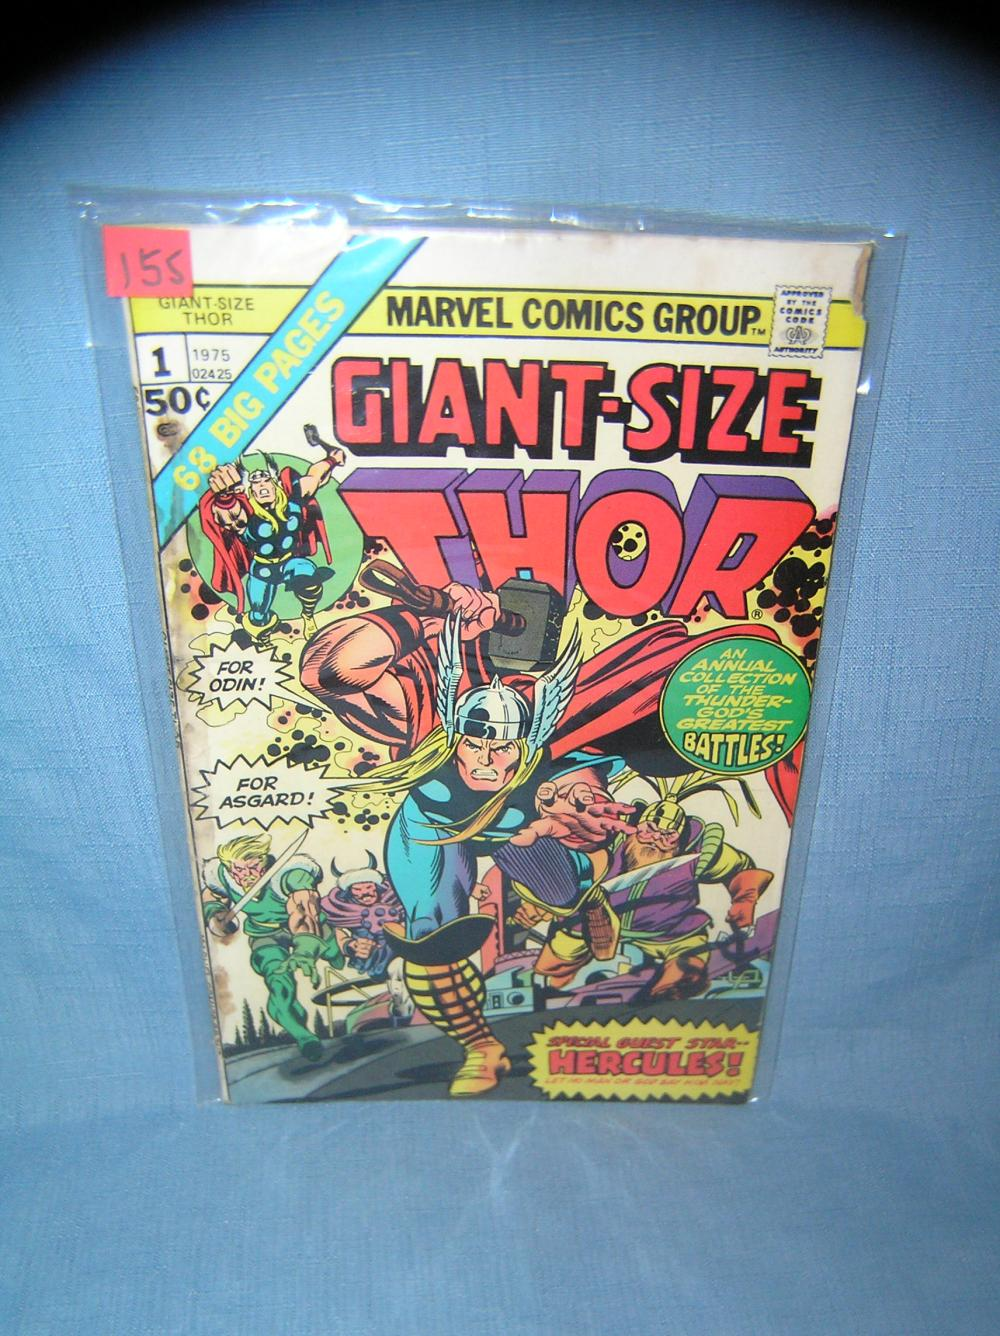 EARLY MARVEL GIANT SIZE THOR COMIC BOOK